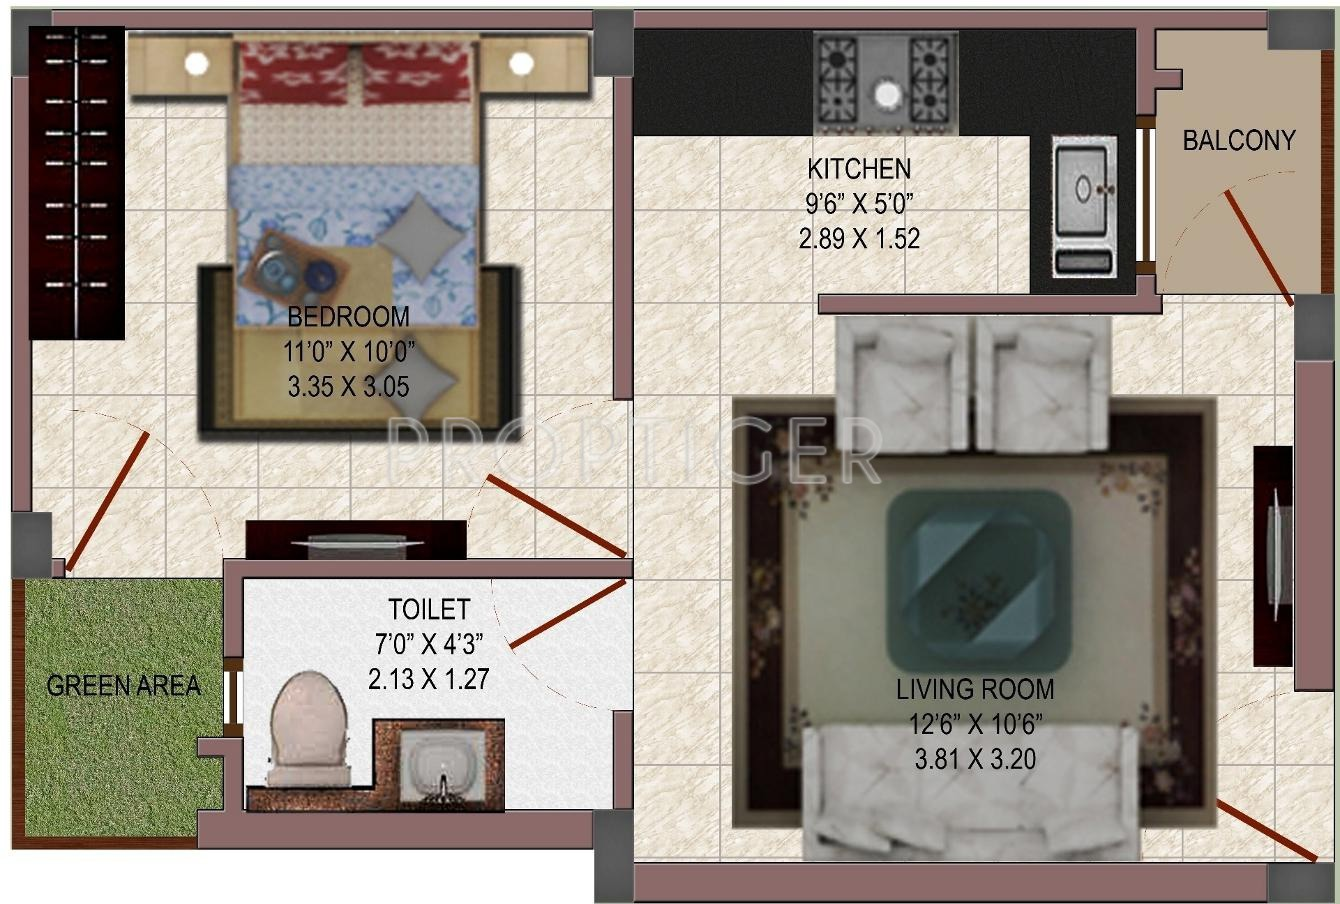 Home Design 550 Sq Ft Part - 43: 100 Home Design 550 Sq Ft 1500 Square Foot House Plan